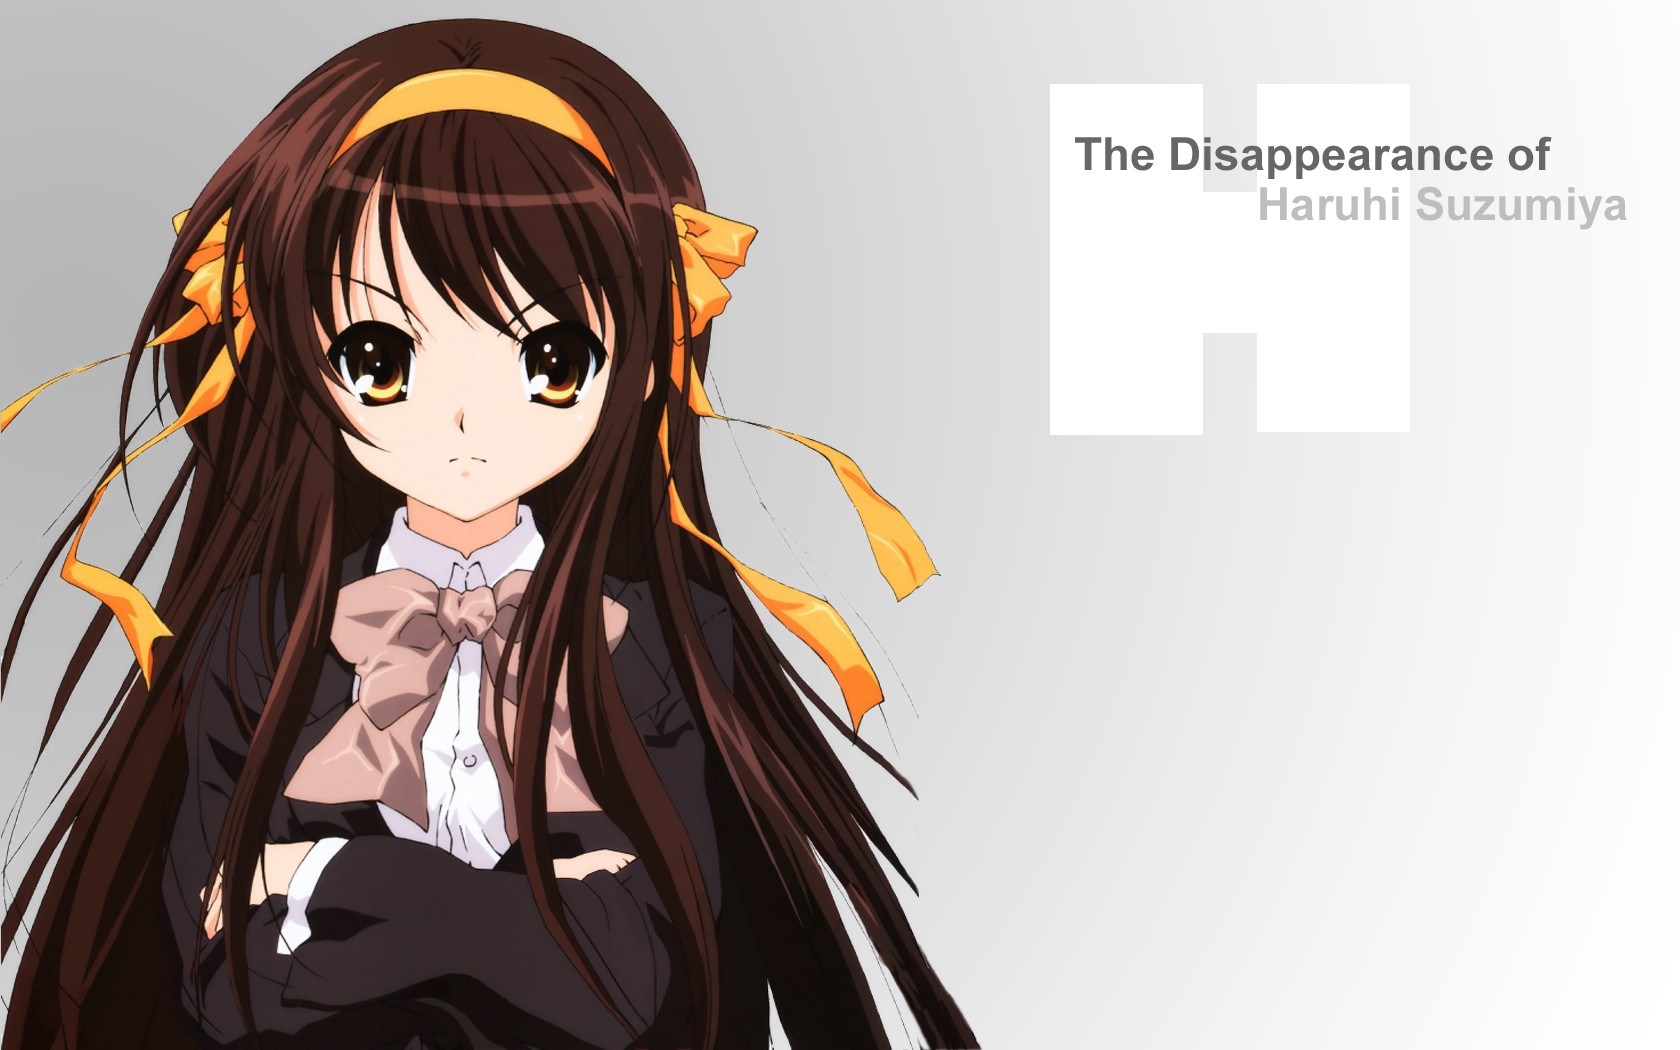 The disappearance movie